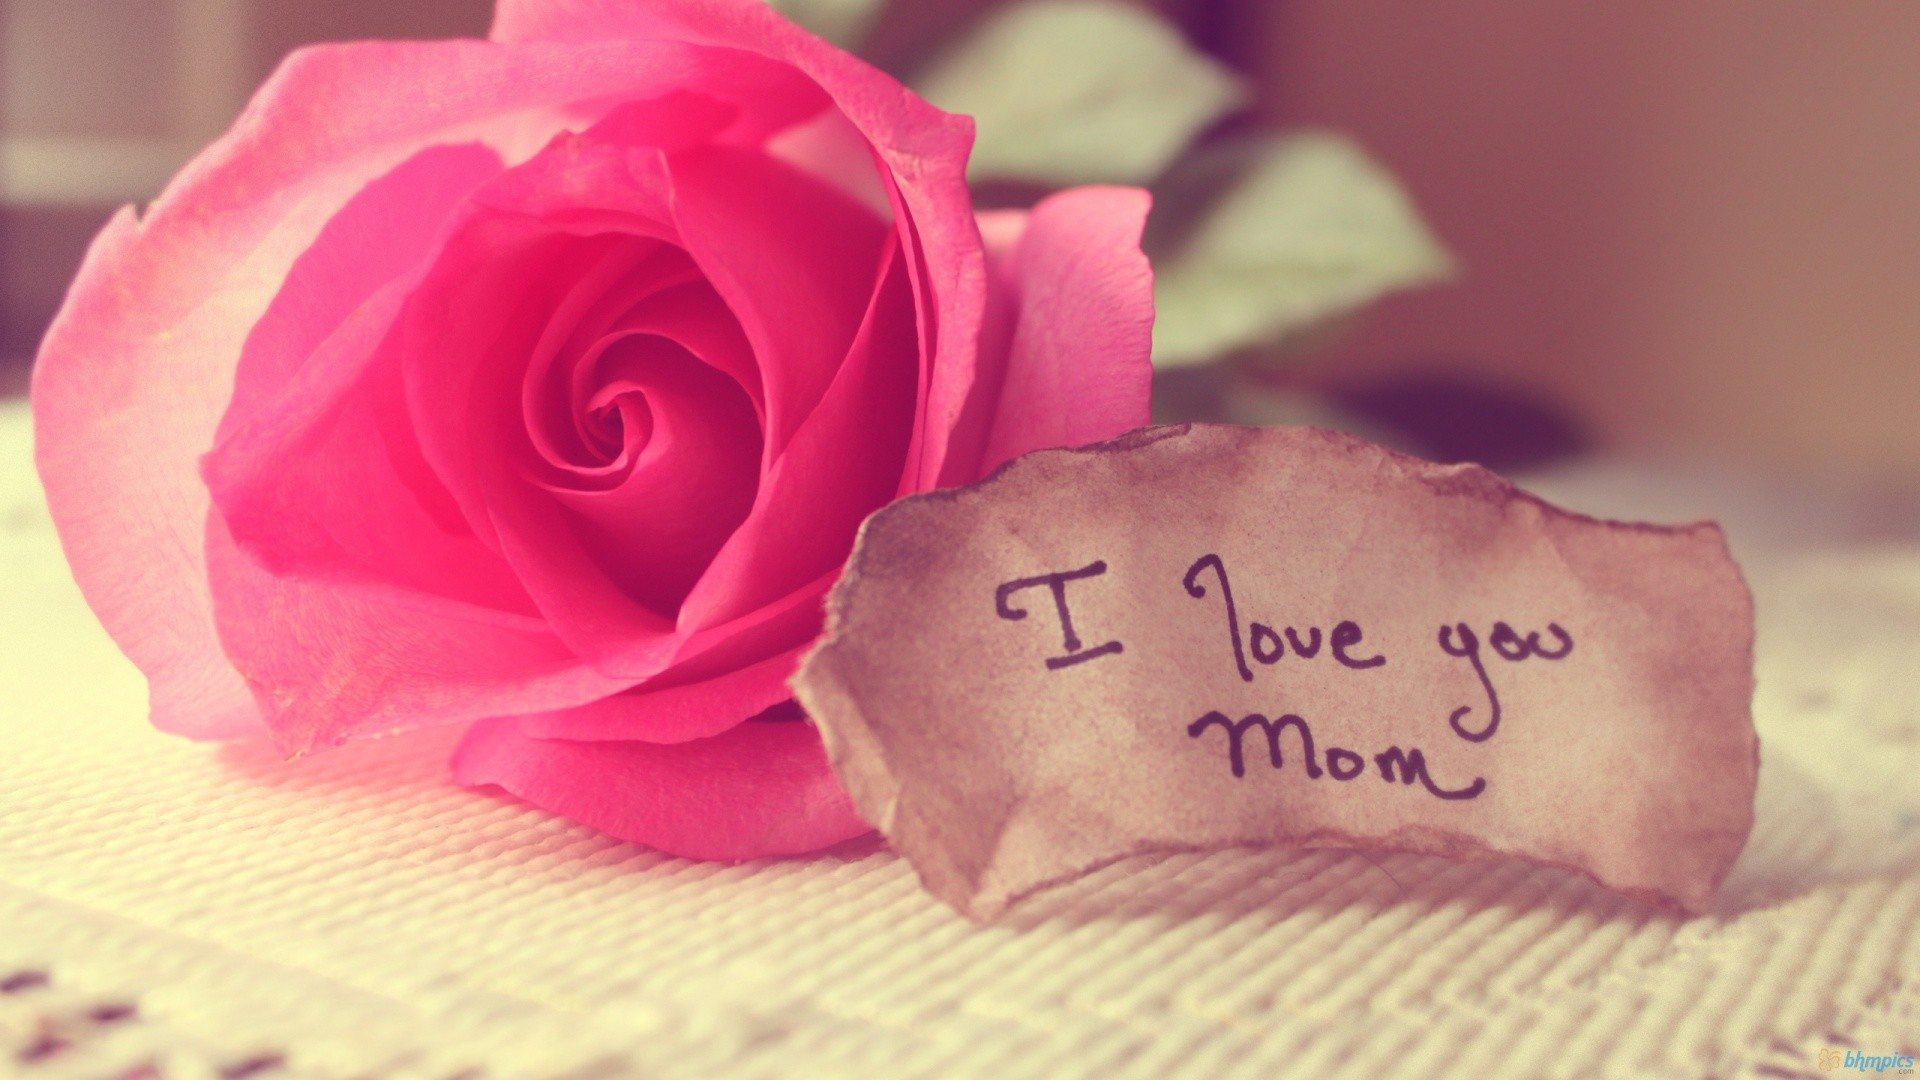 1920x1080 I Love My Mom Quotes for Facebook | Mother's Day I Love You Mom HD Wallpaper